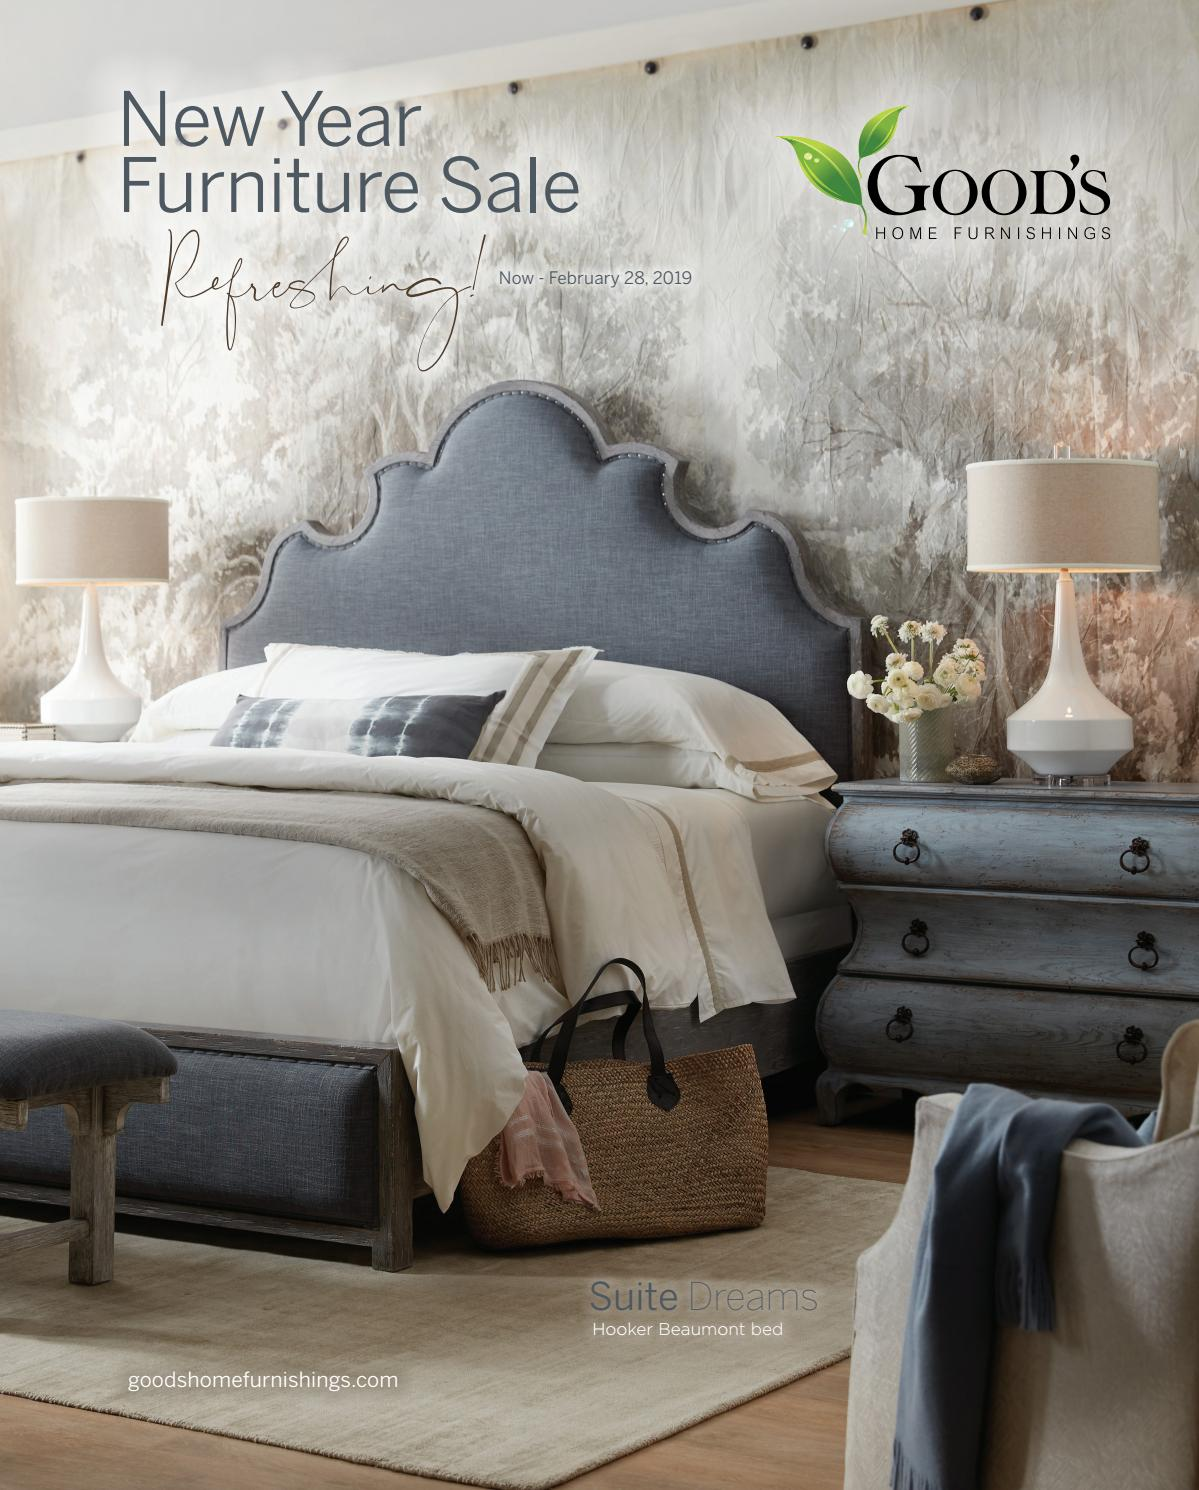 Goods home furnishings new year sale look book by goods home furnishings issuu